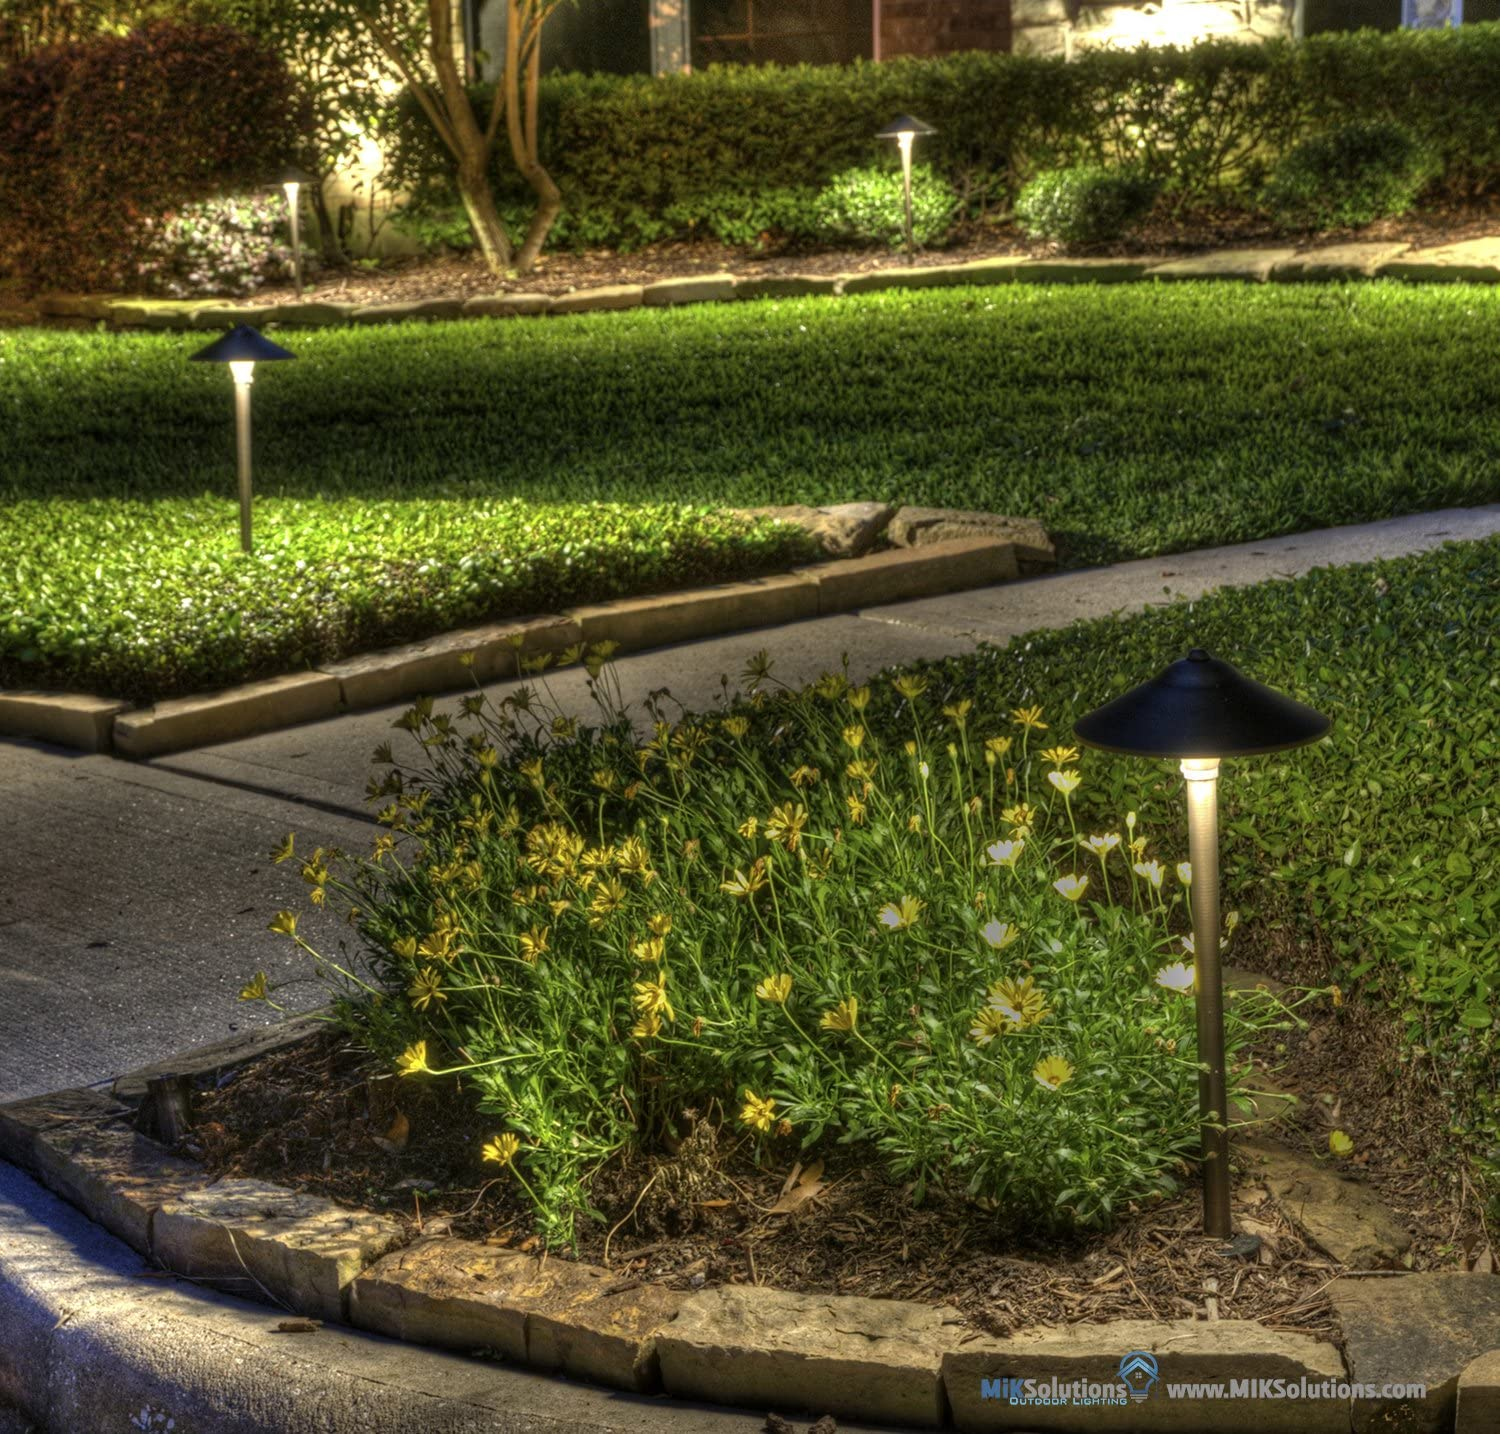 MIK Solutions Outdoor Lighting LED Pathway Landscape Light by MIK Solutions BULB 3W 12V Solid Brass Low Voltage LED Light Outdoor Mushroom Security Garden Patio Deck Pool Area Light for Beautiful Bright Long Lasting Warm White